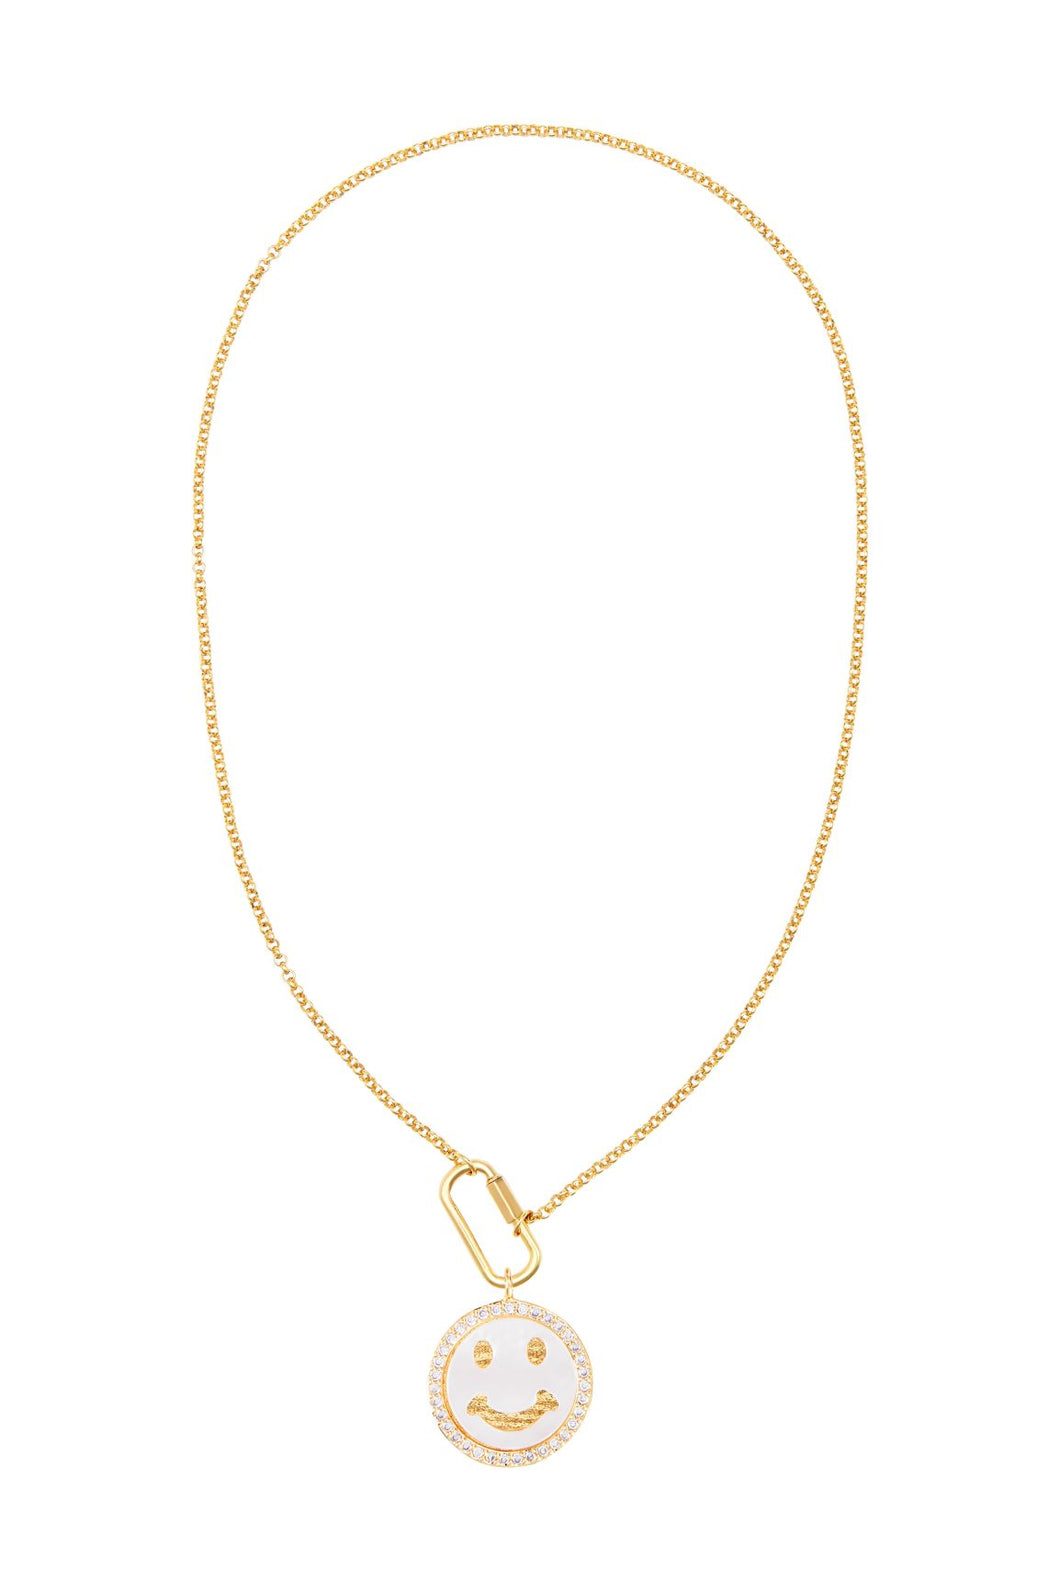 NEW! The Rio Necklace Celeste Starre